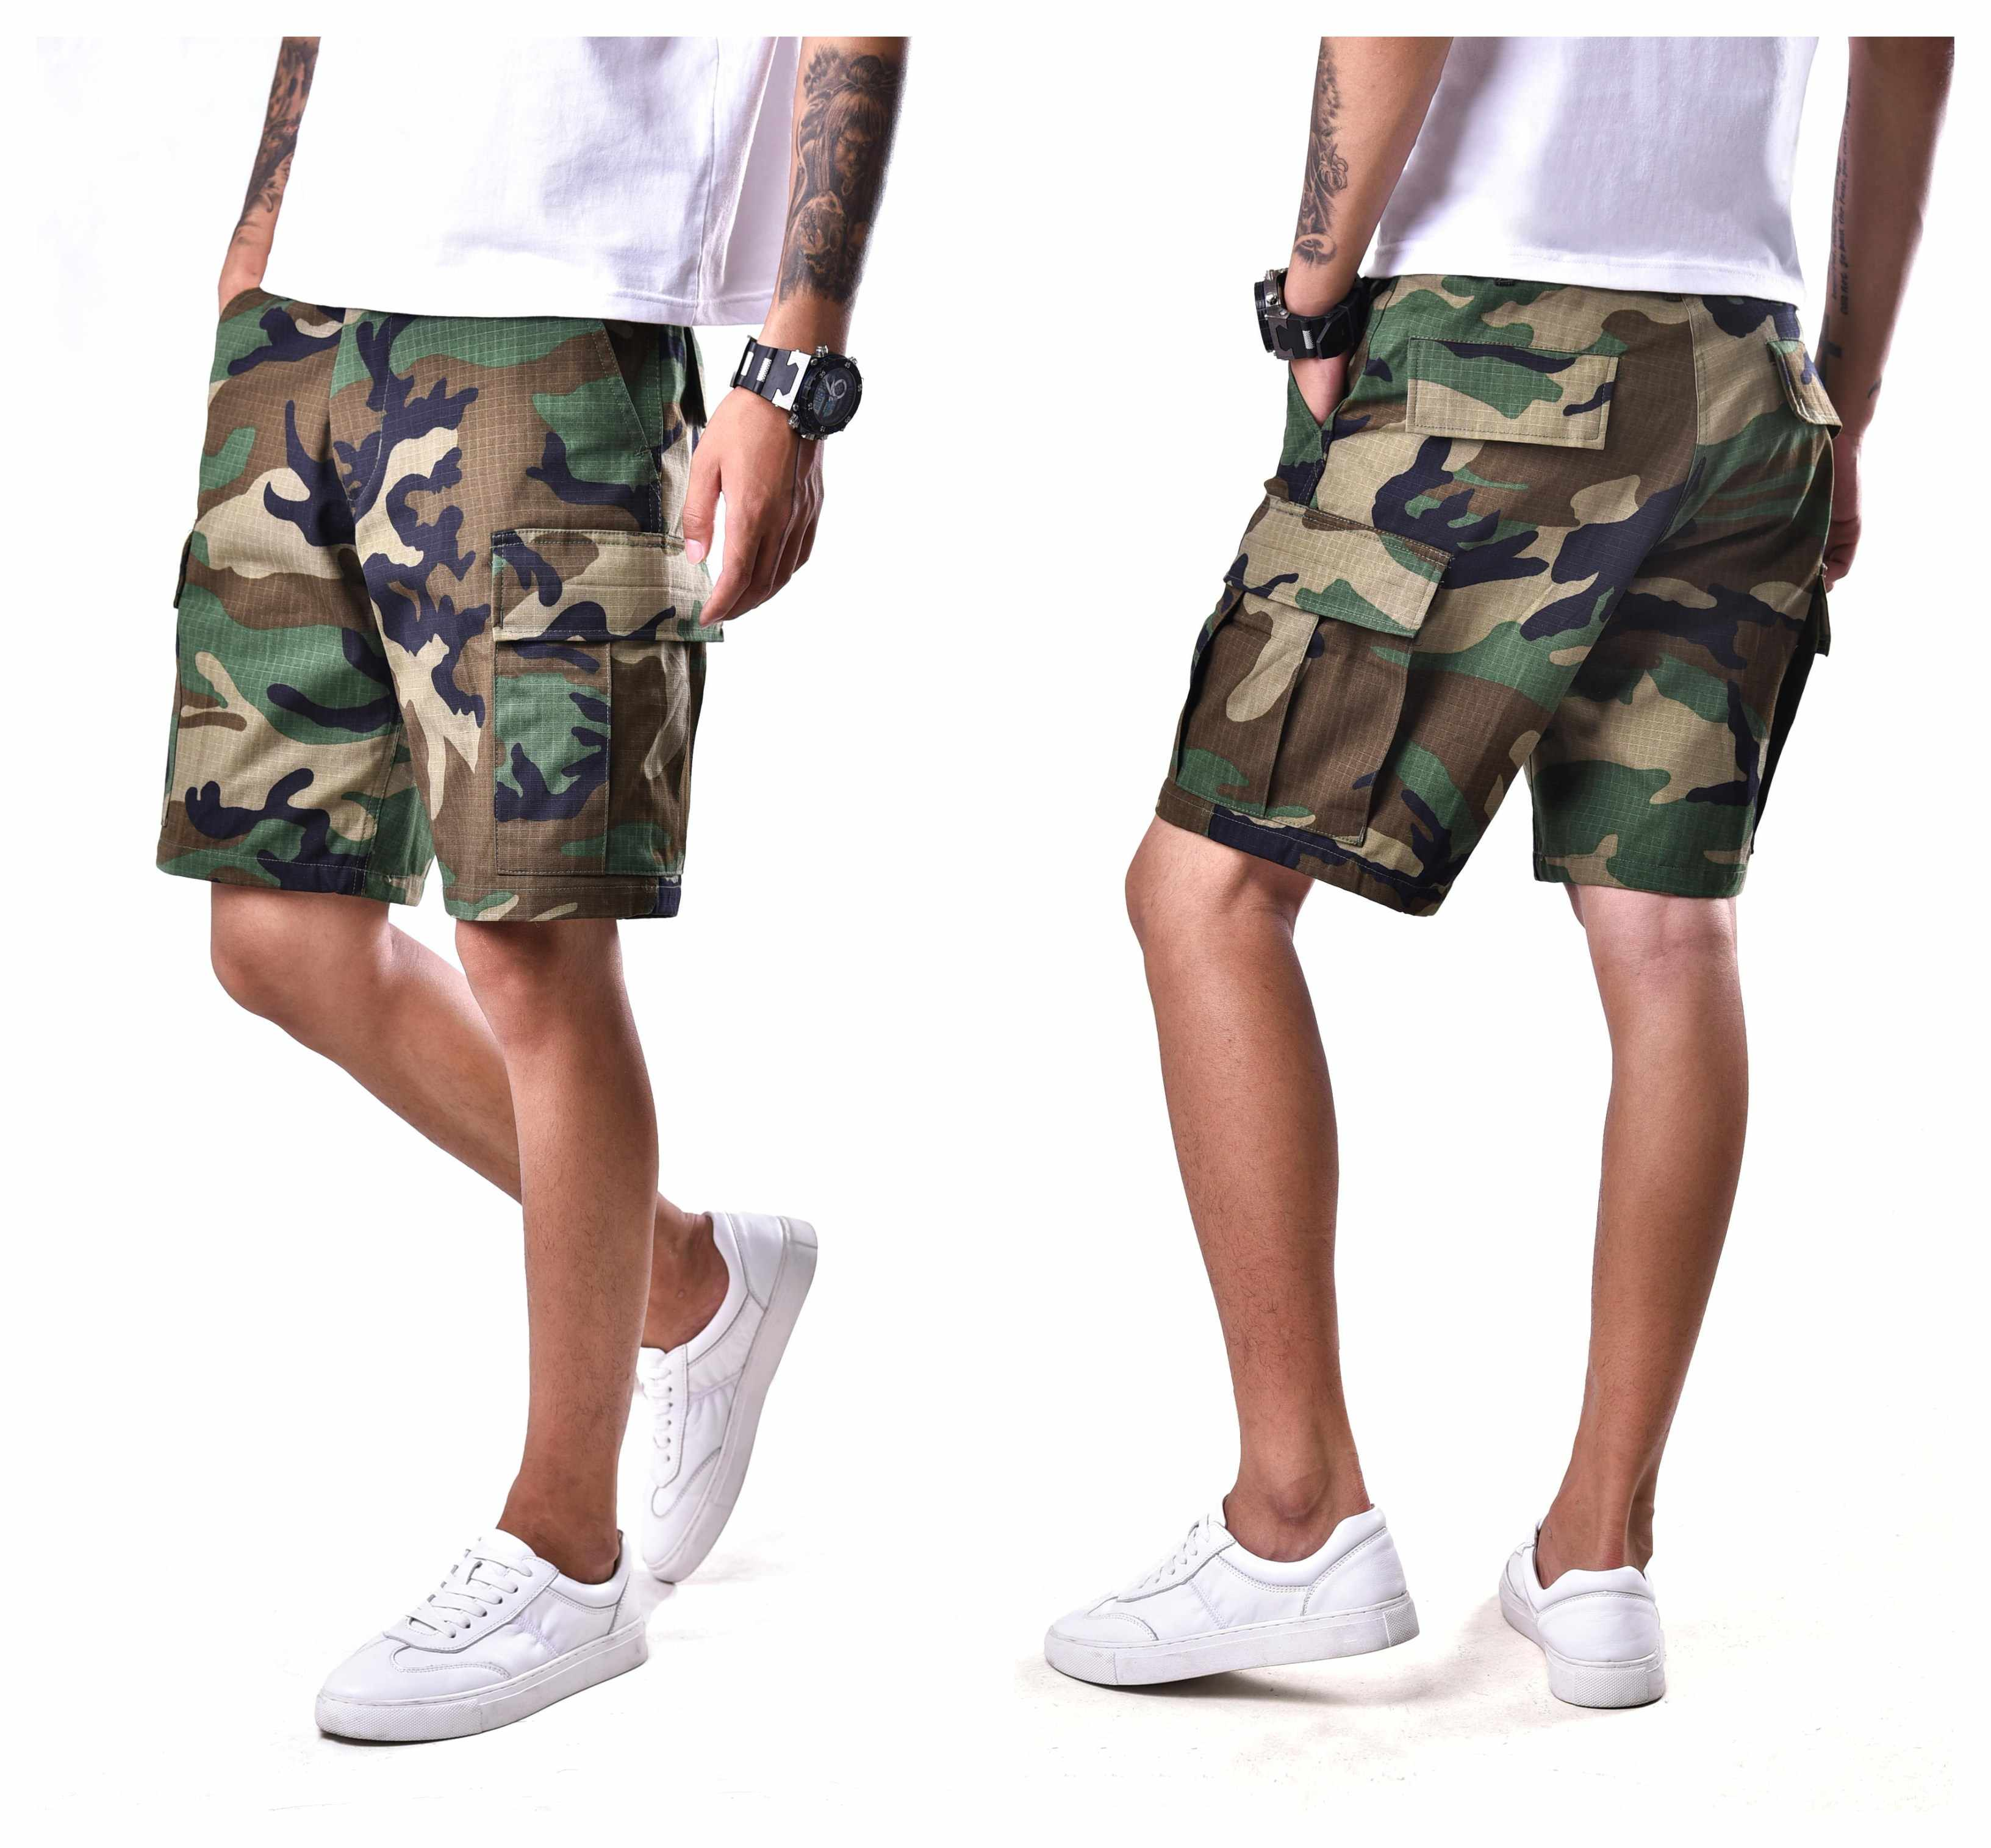 Mens Casual Straat Shorts Combat Militaire Leger Camo Bdu Shorts Werk Camp Outdoor Shorts